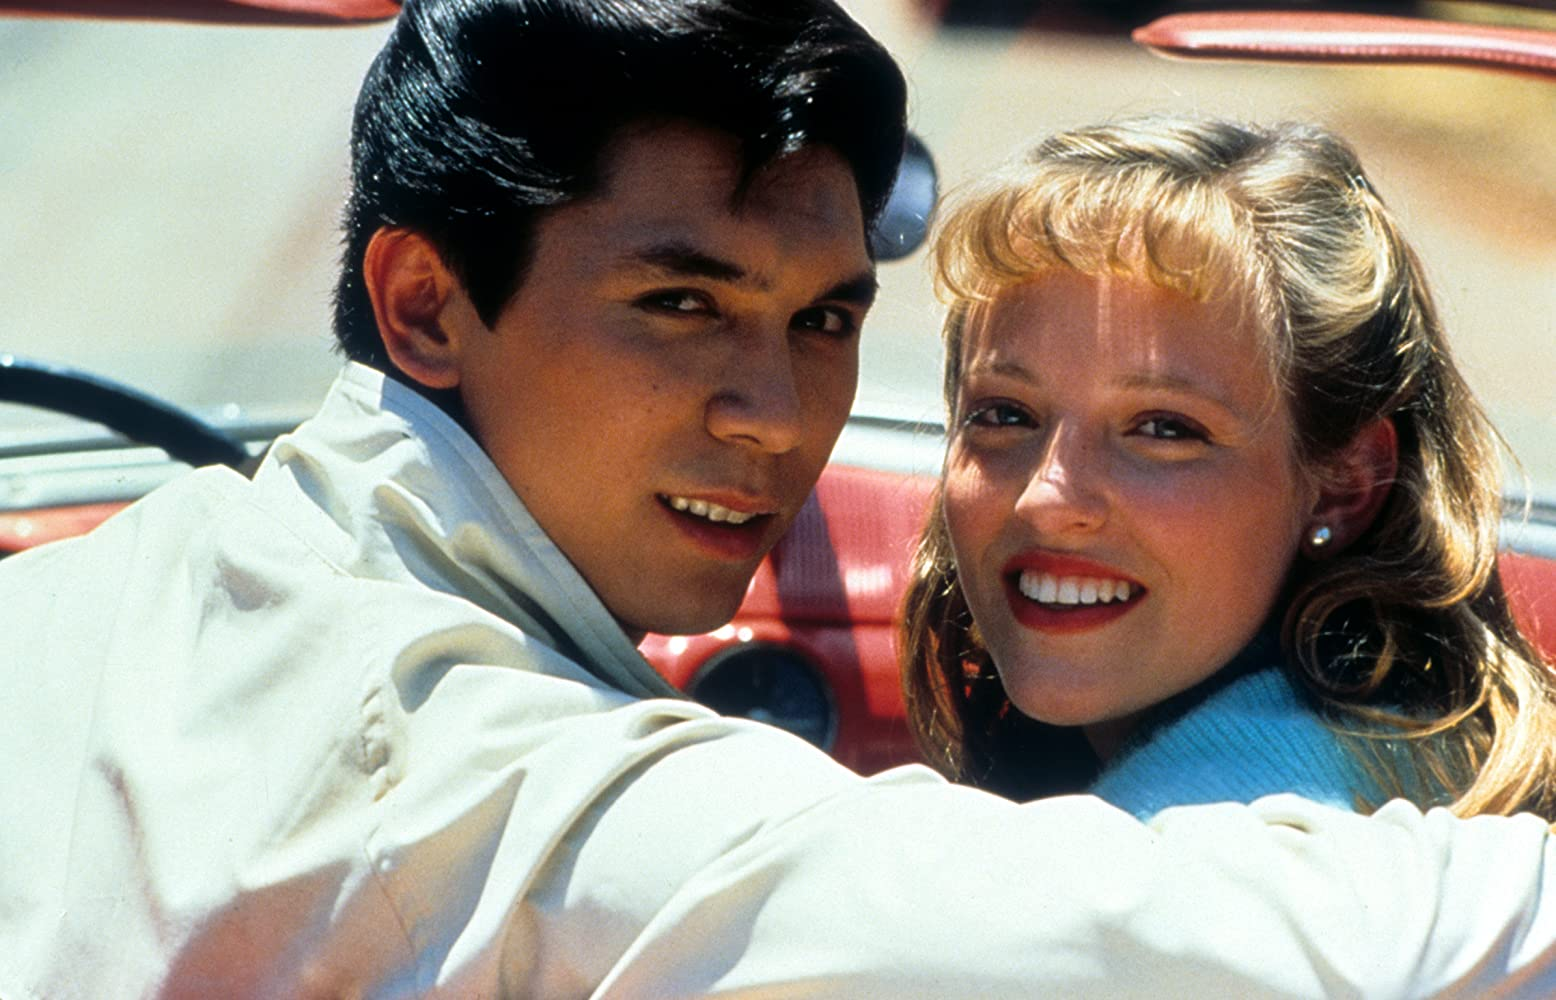 Lou Diamond Phillips and Danielle von Zerneck in La Bamba (1987)